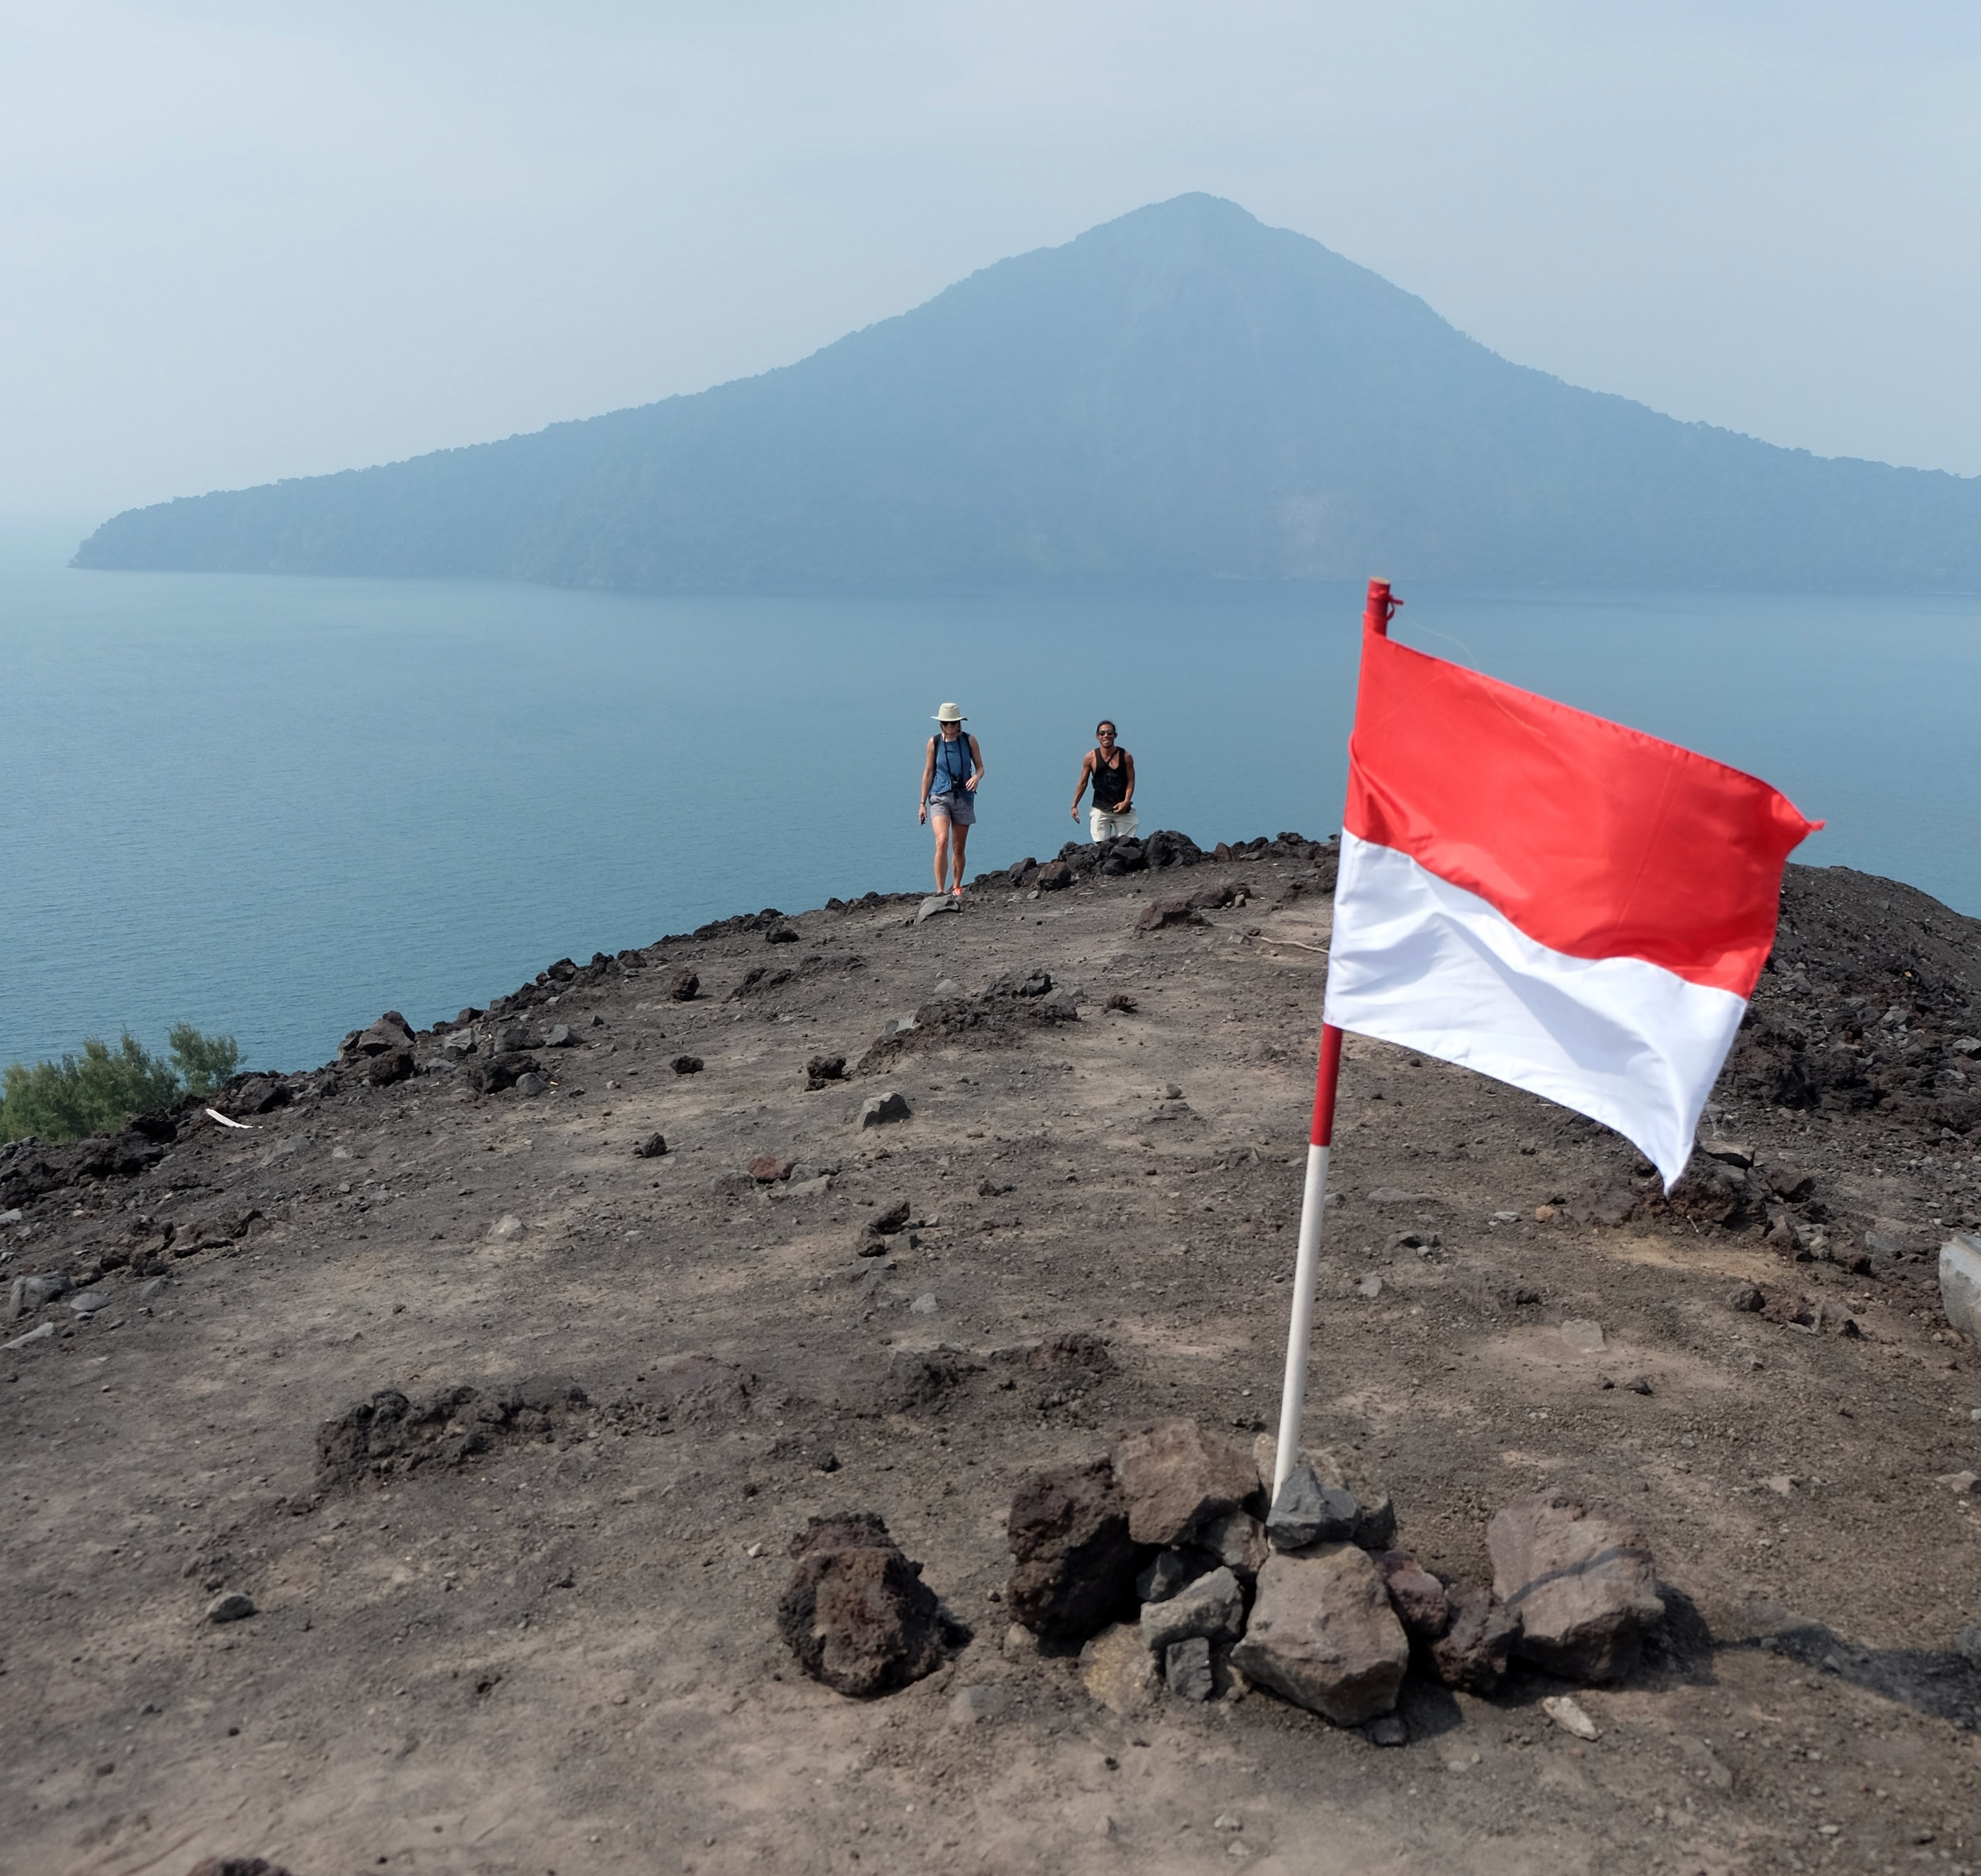 Indonesia's independence day was the day before we arrived, so their flags were flying to celebrate 72 years of independence.